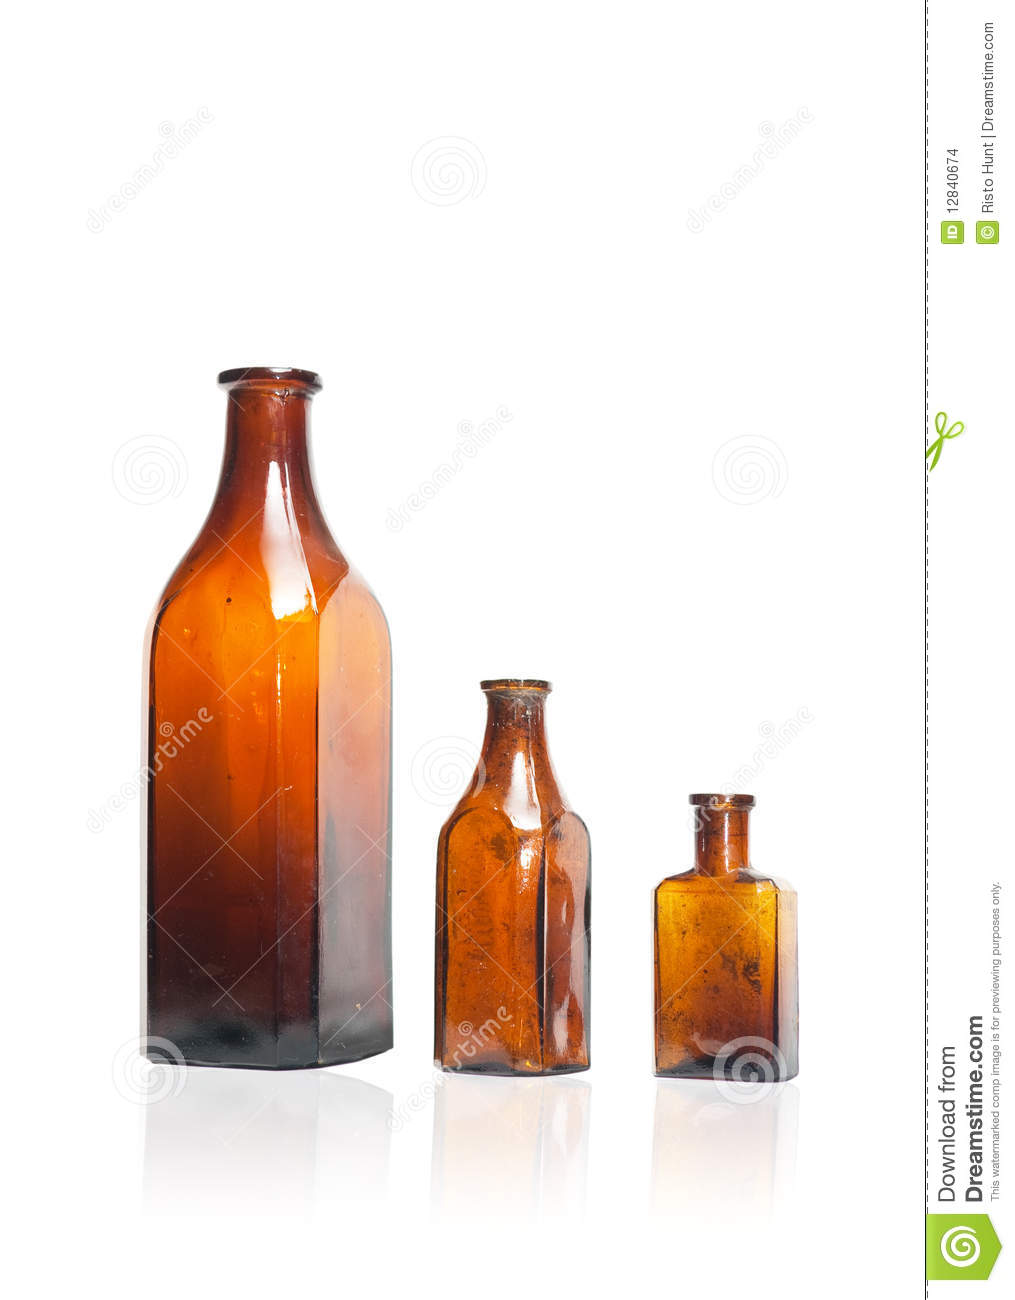 Old style bottles in row